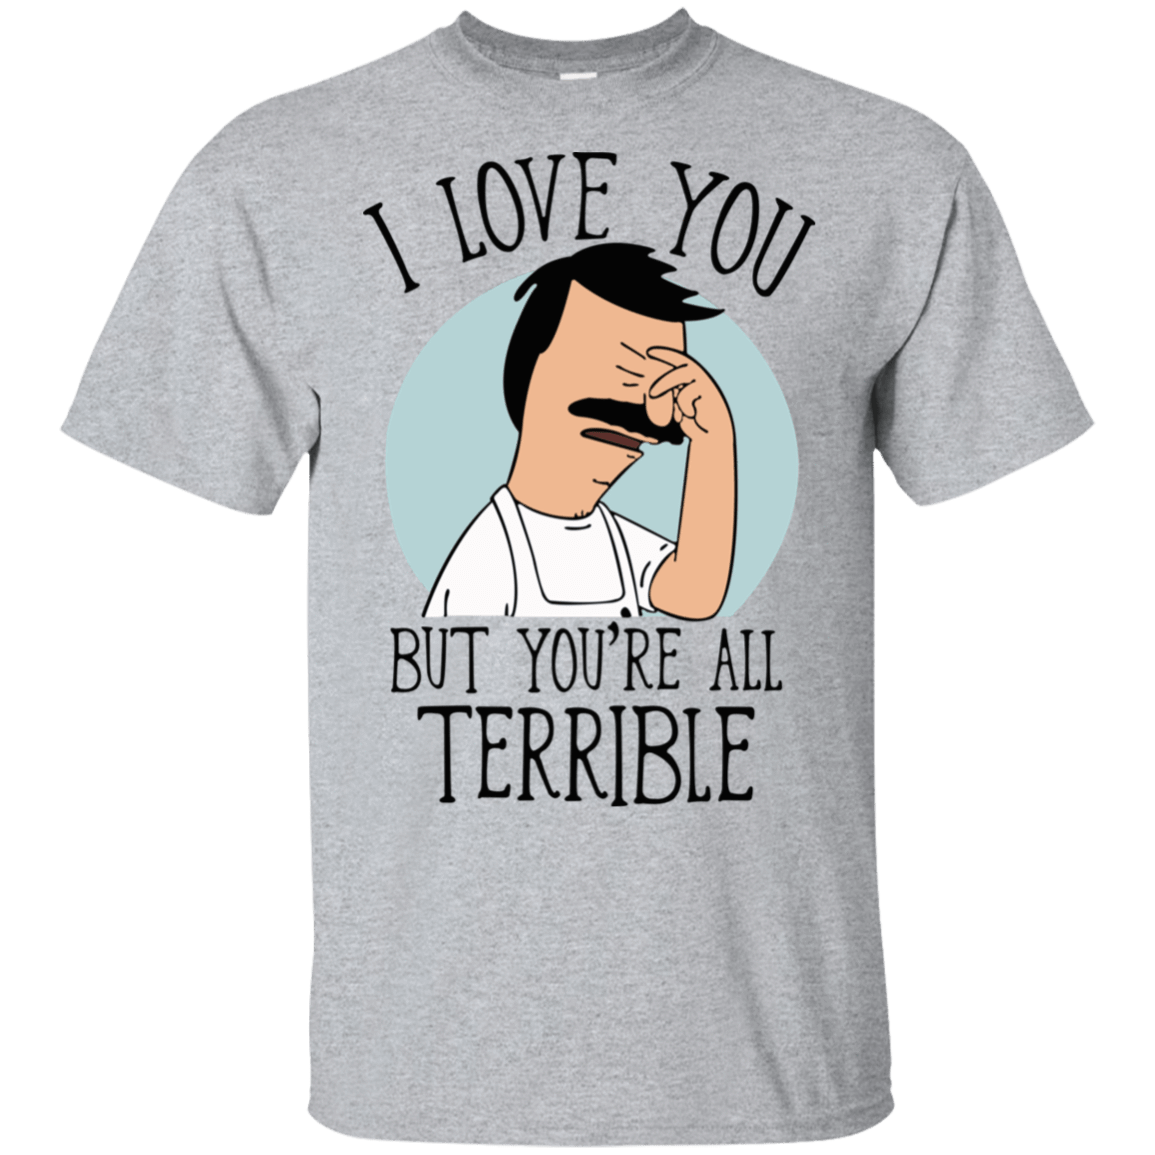 Bob's Burgers: I Love You But You're All Terrible 22-115-72789298-254 - Tee Ript